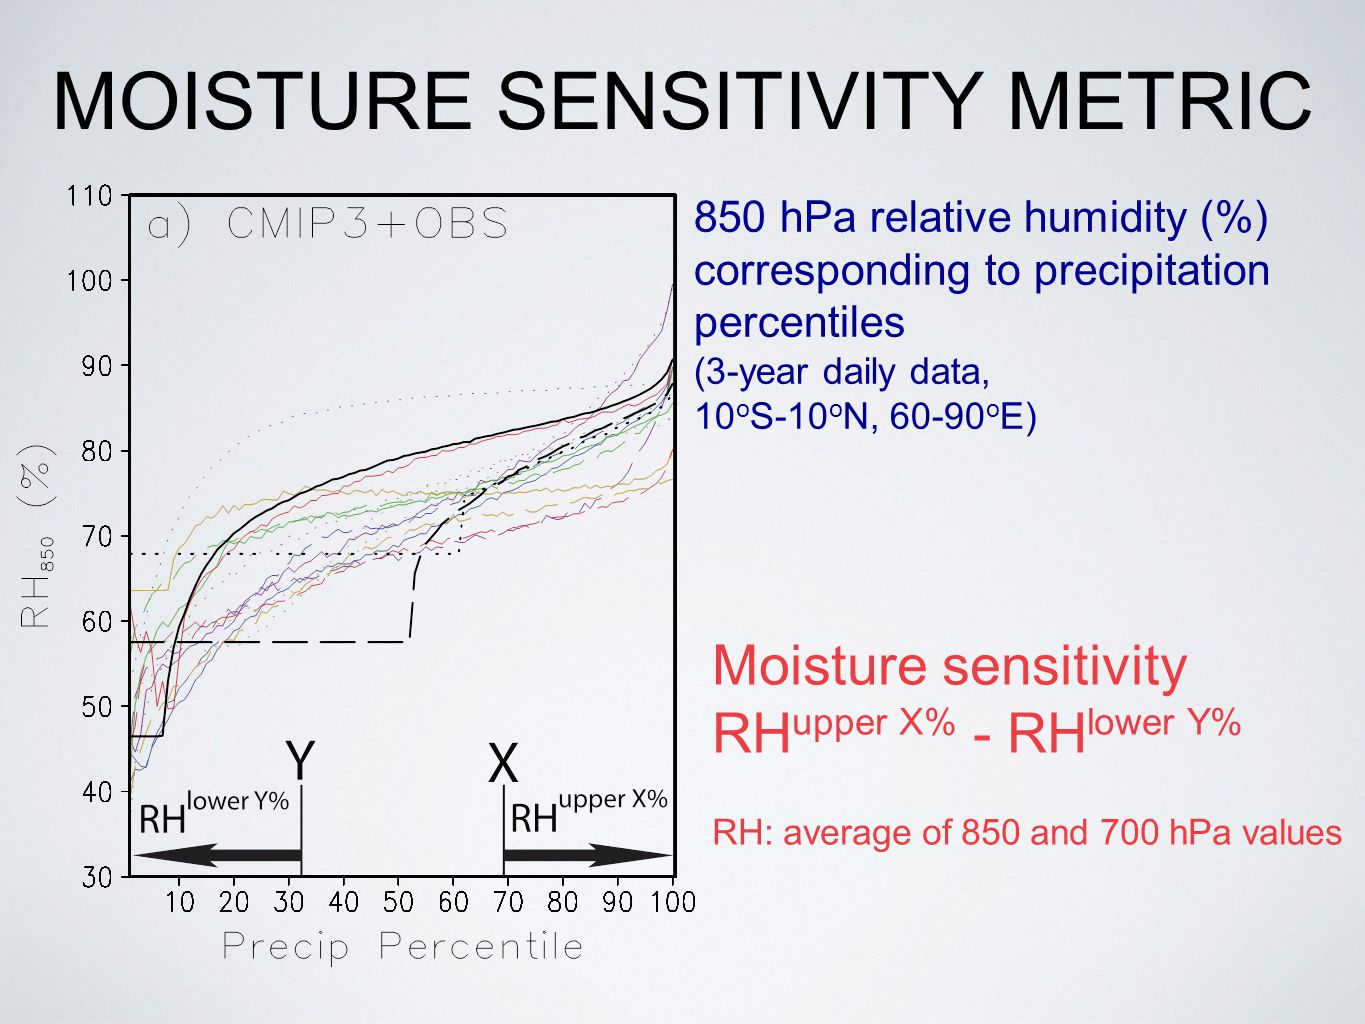 MOISTURE SENSITIVITY METRIC Moisture sensitivity RH upper X% - RH lower Y% RH: average of 850 and 700 hPa values 850 hPa relative humidity (%) corresponding to precipitation percentiles (3-year daily data, 10 o S-10 o N, 60-90 o E)